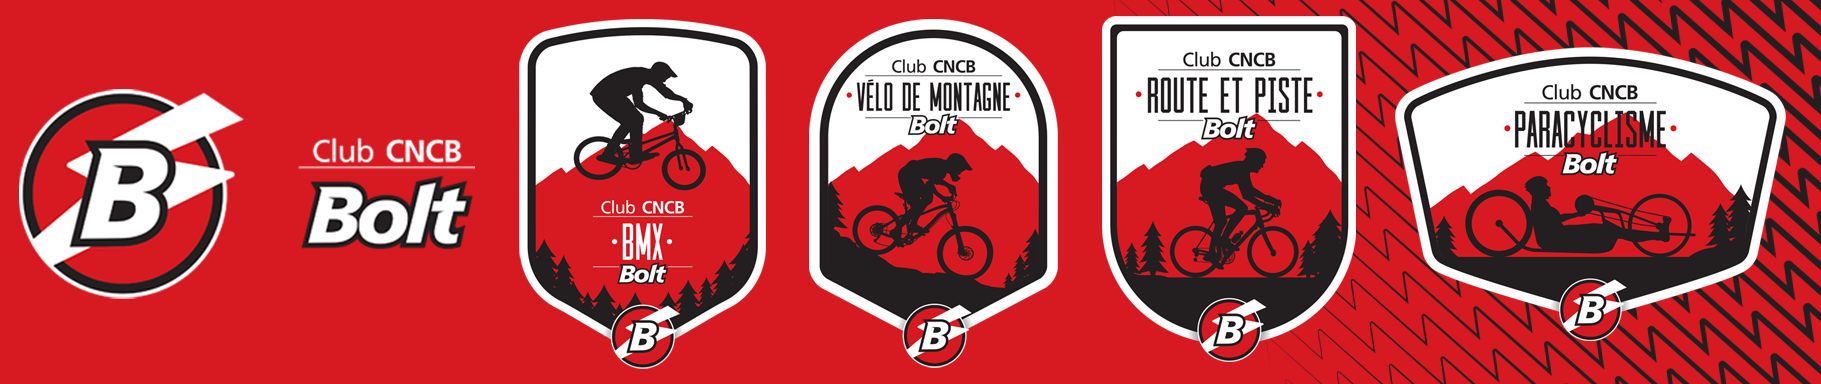 Template communication Club CNCB-BOLT